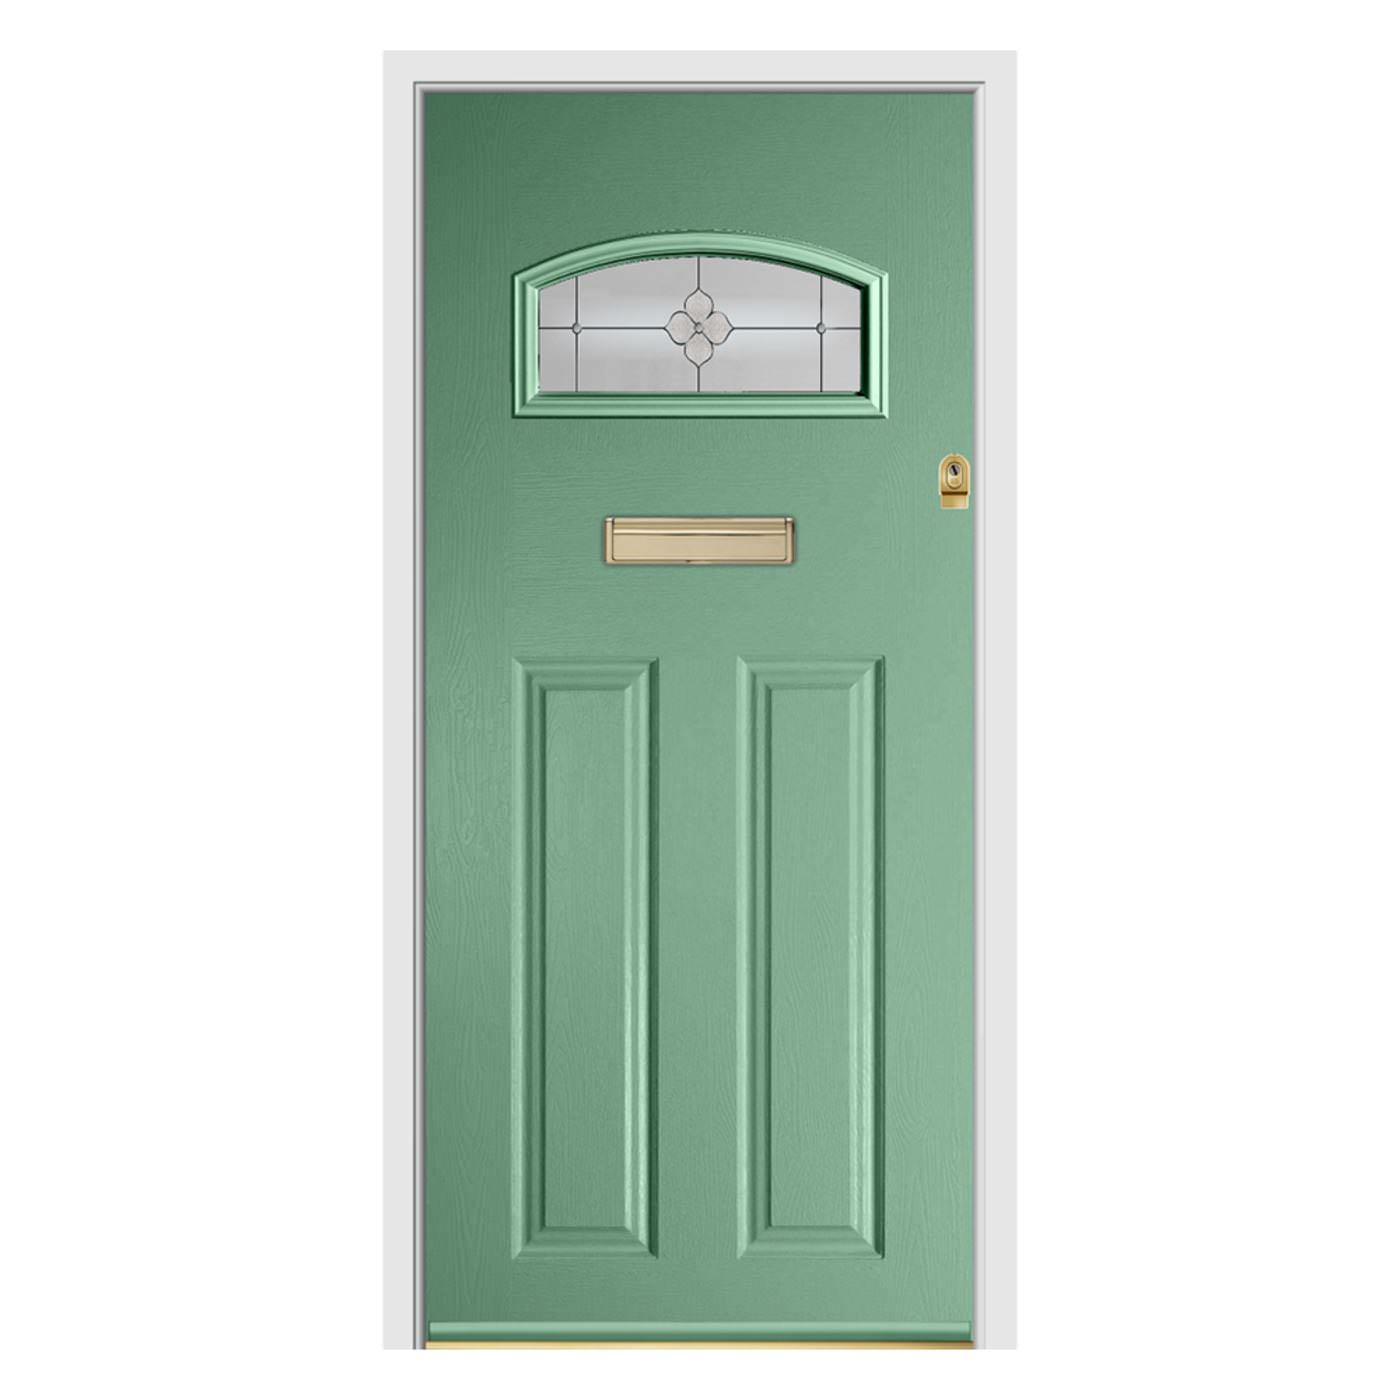 1930s Style Front Doors: Your Guide | Endurance®